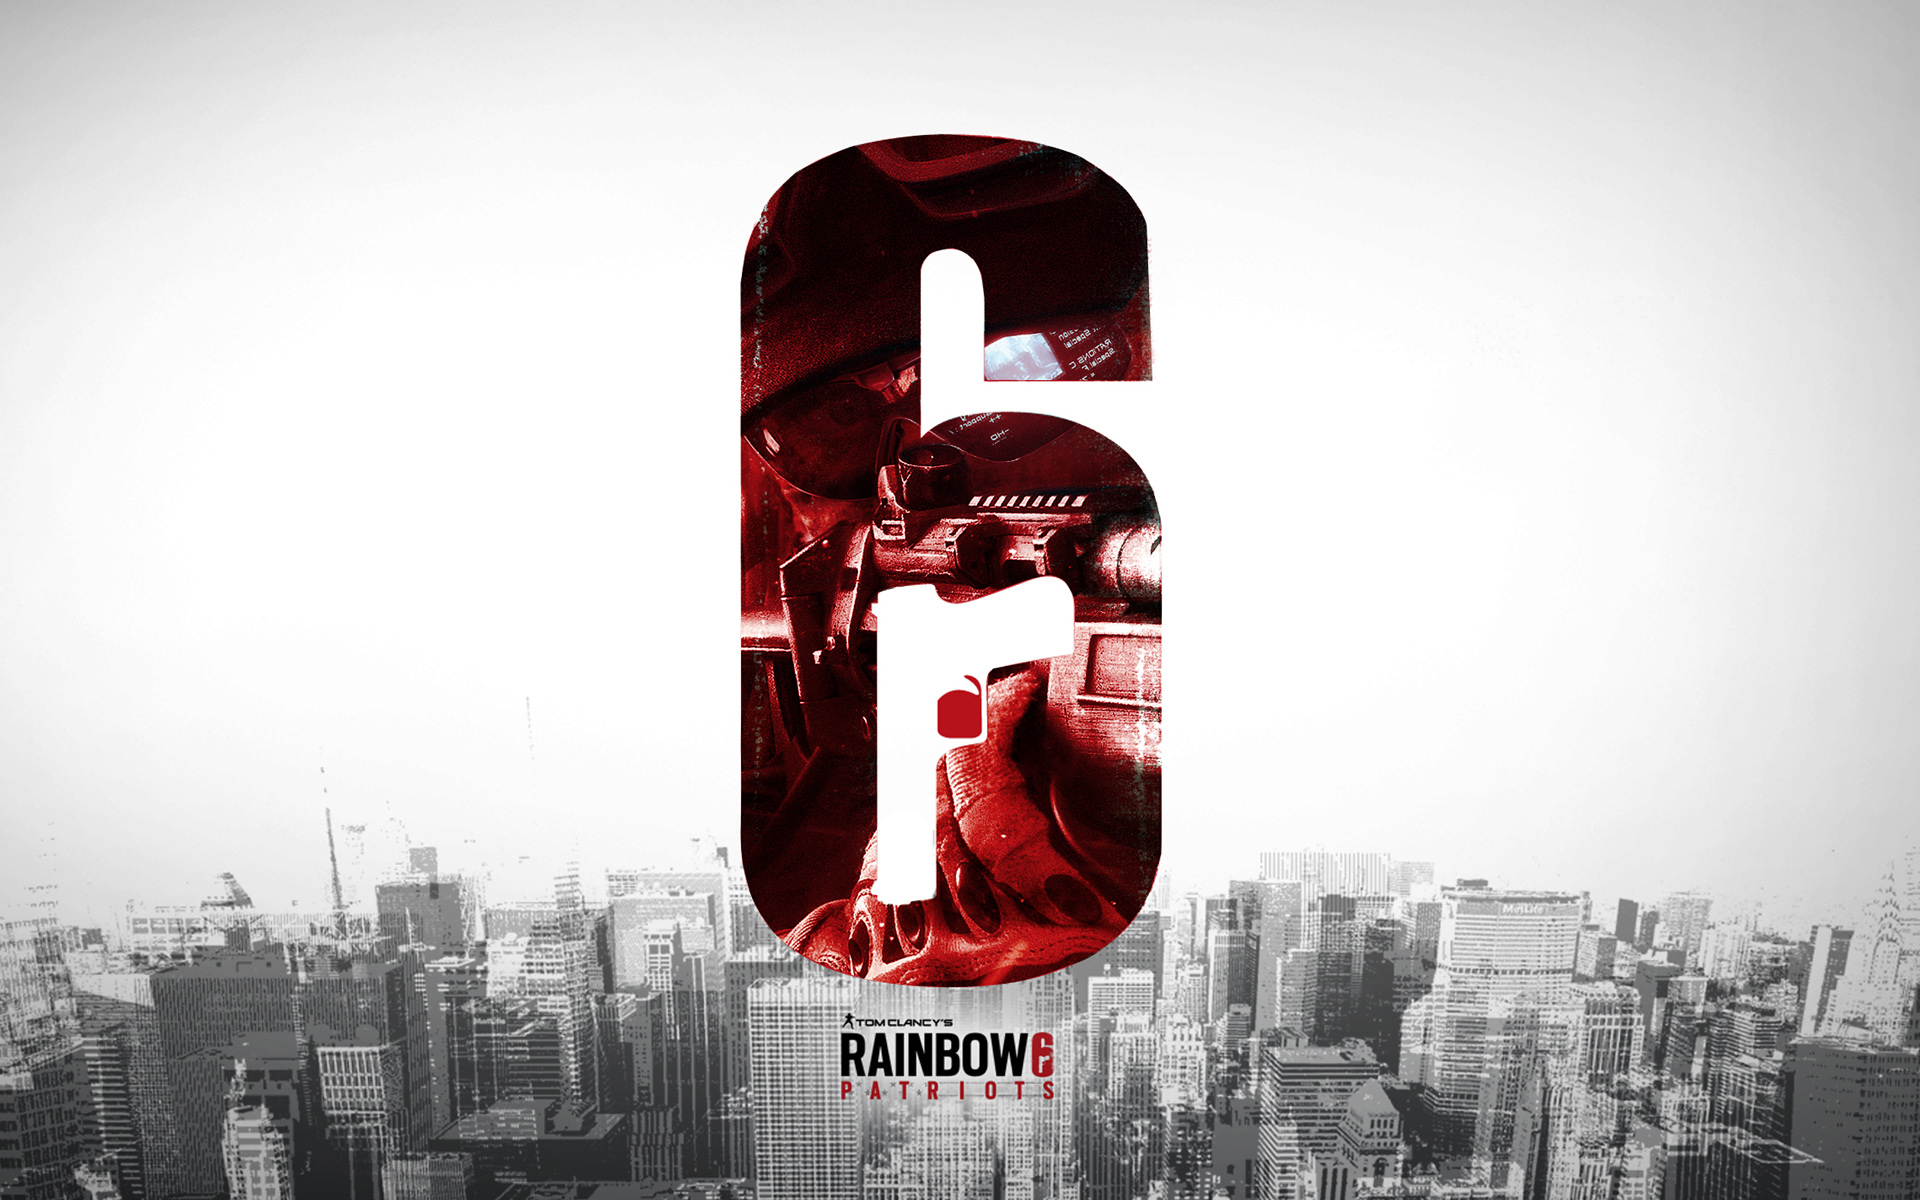 Rainbow 6 Patriots 2387.66 Kb